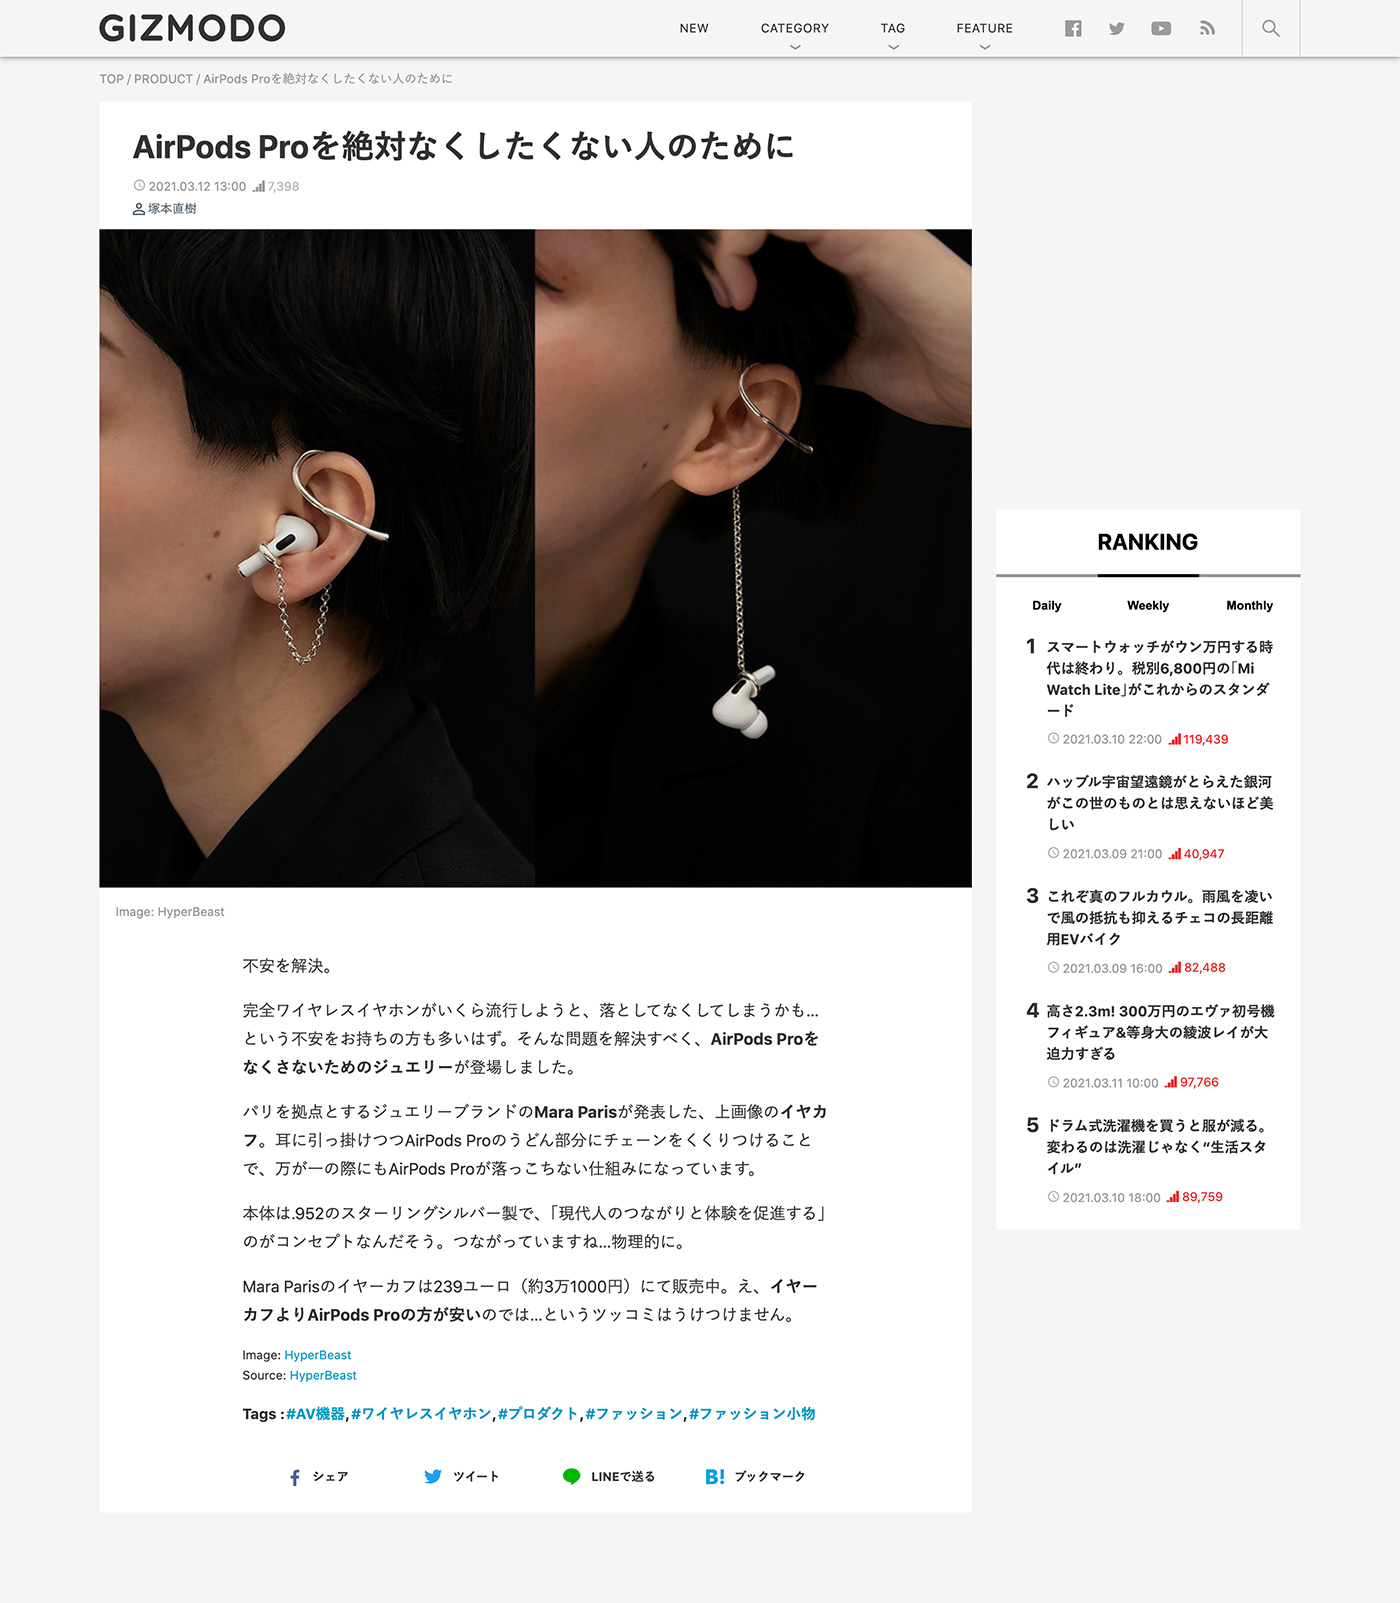 Gizmodo - AirPods Proを絶対なくしたくない人のために. For those who never want to lose their AirPods Pro.